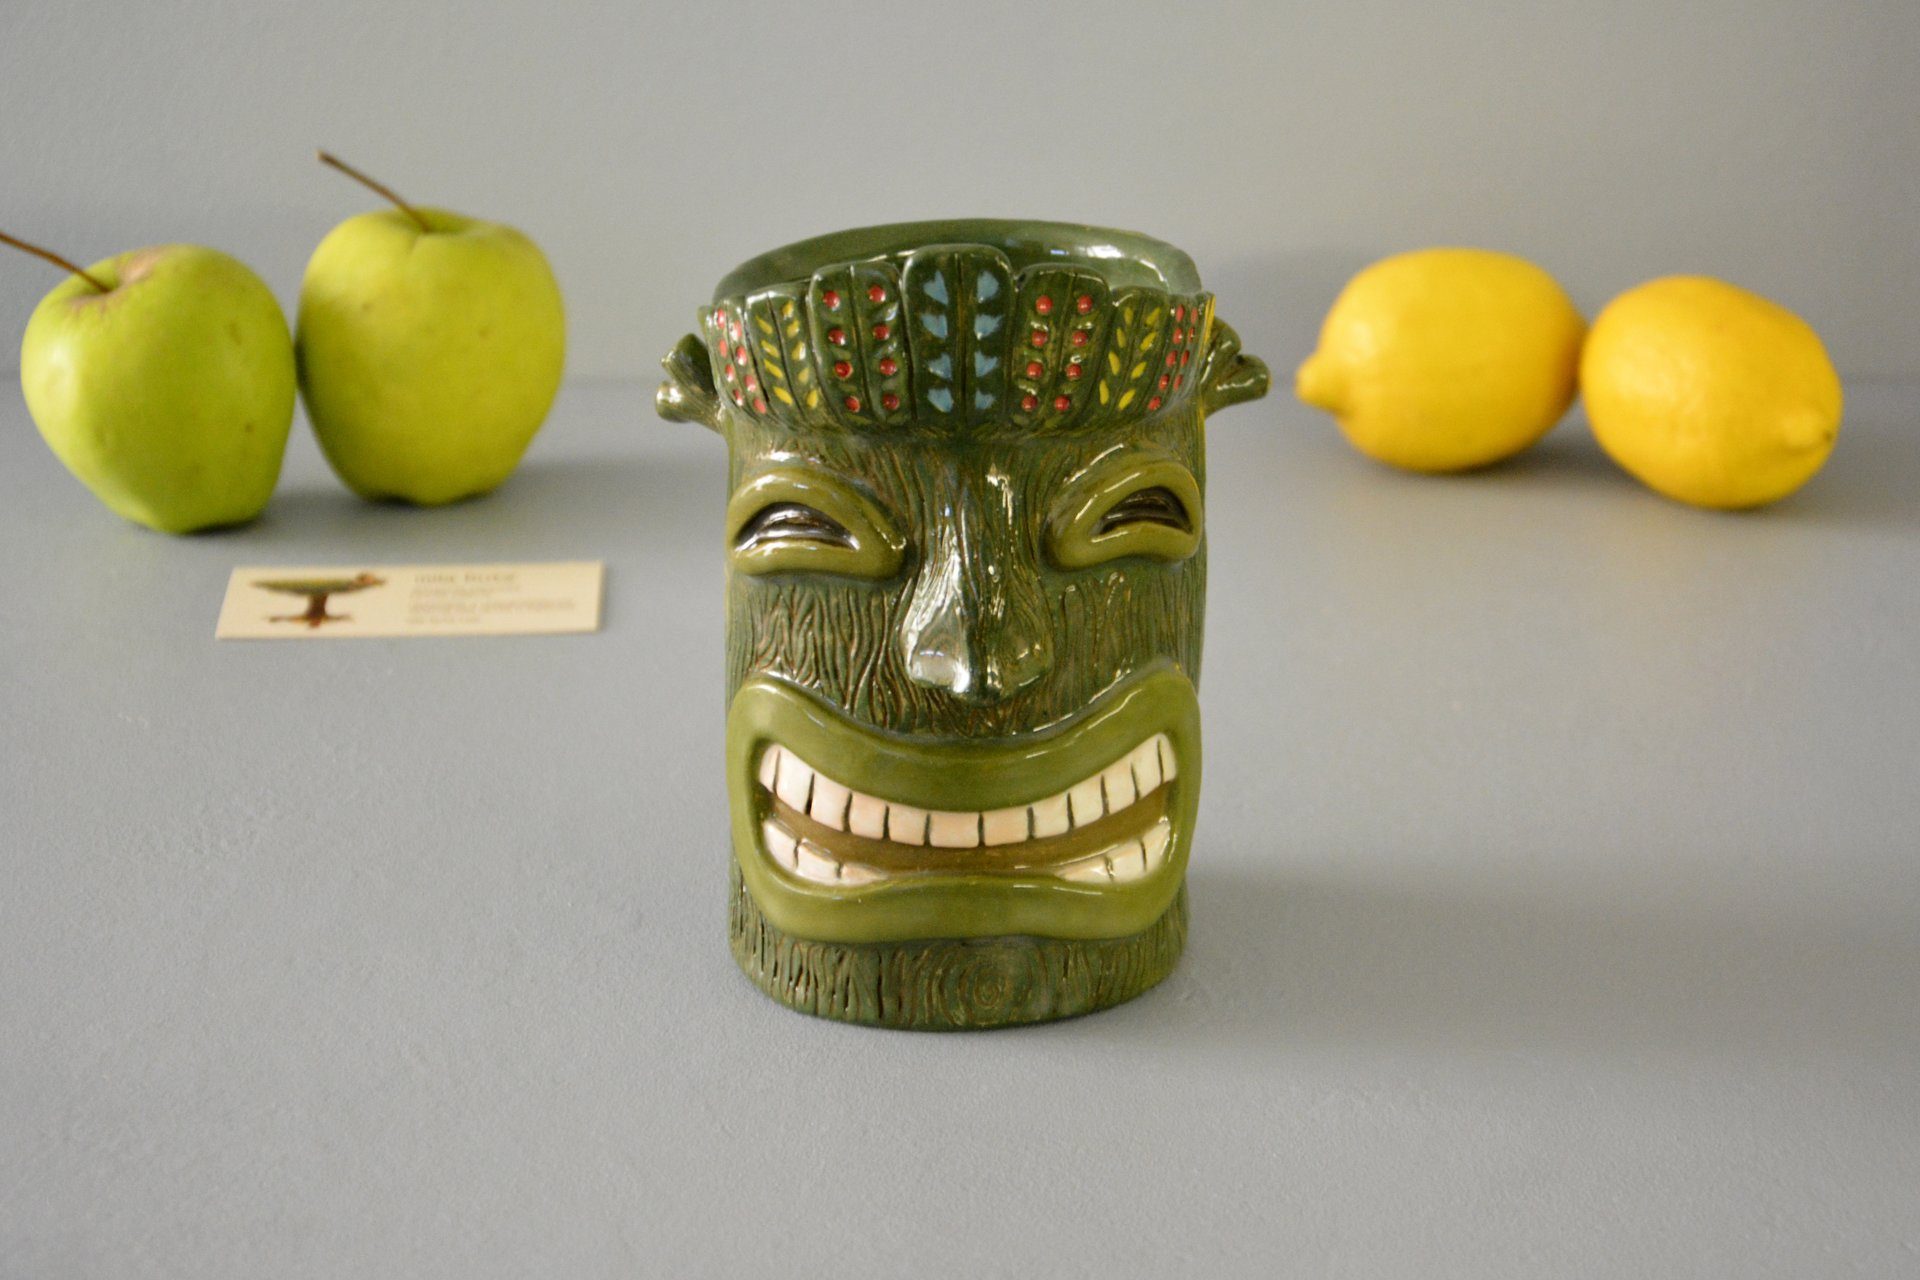 Tiki Glass, big green, height - 15 cm, volume - 0.7 l, photo 1 of 6.